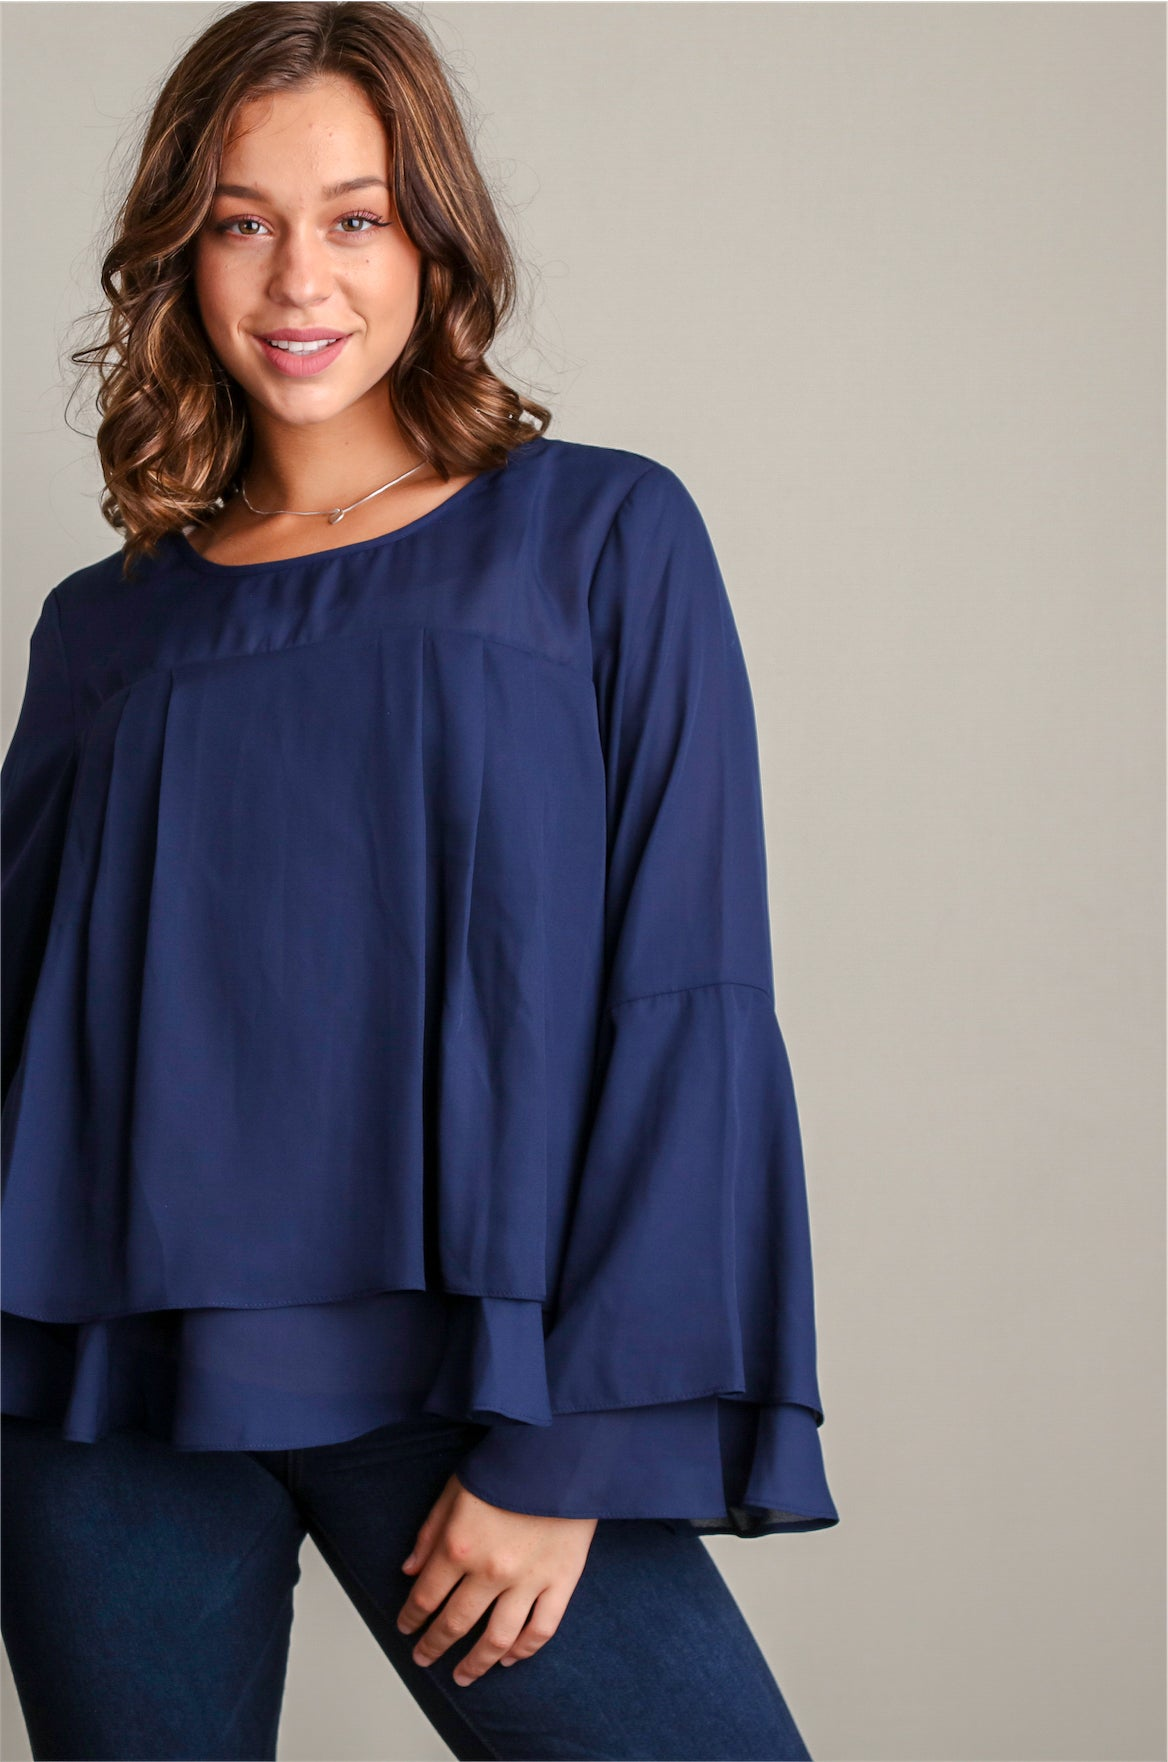 Navy Dress Me Up Blouse